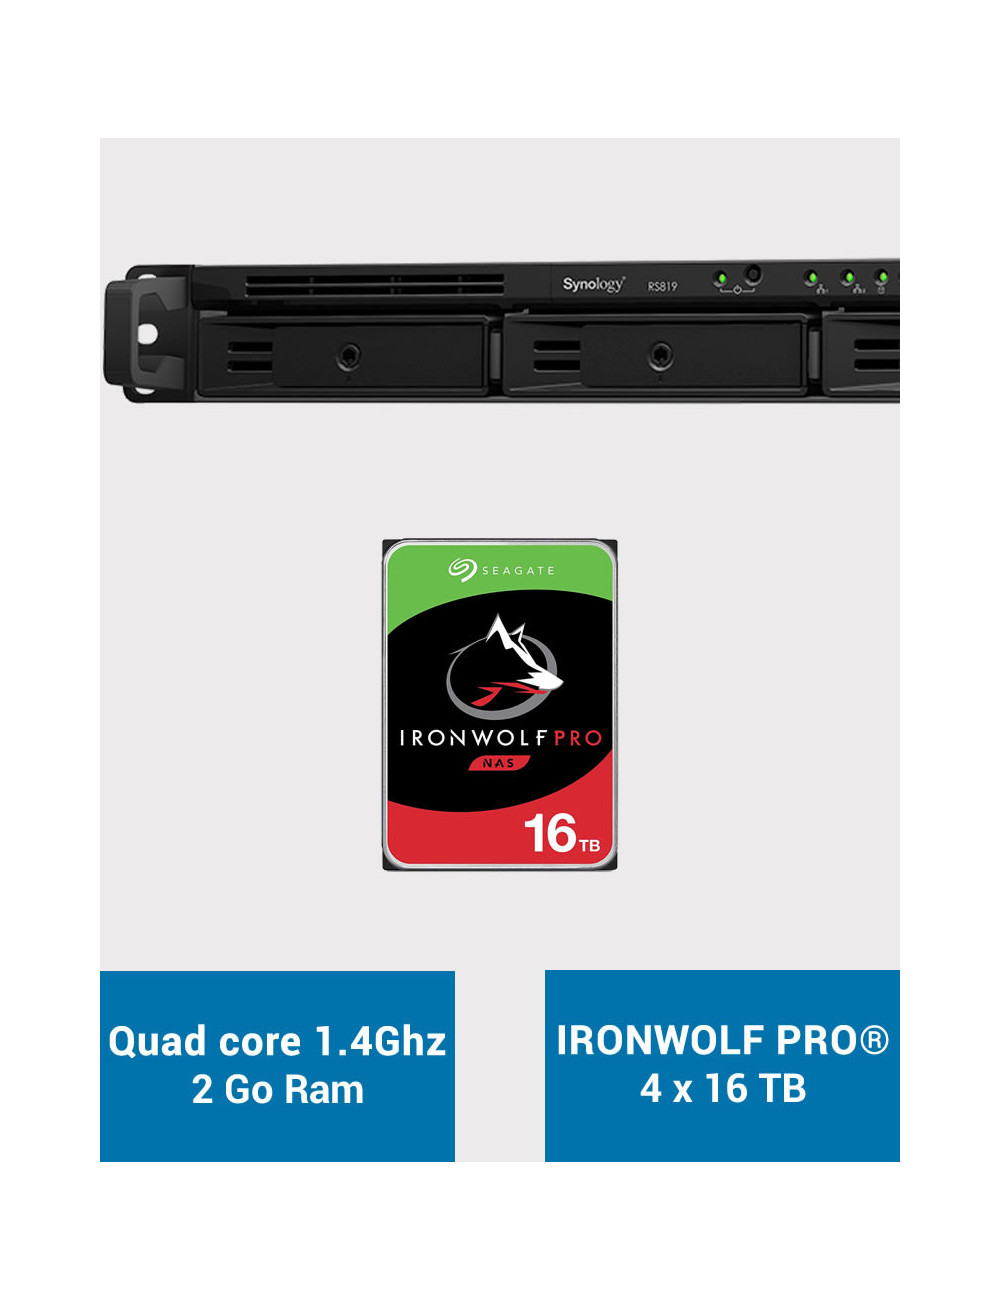 Synology RS819 Serveur NAS IRONWOLF PRO 64To (4x16To)